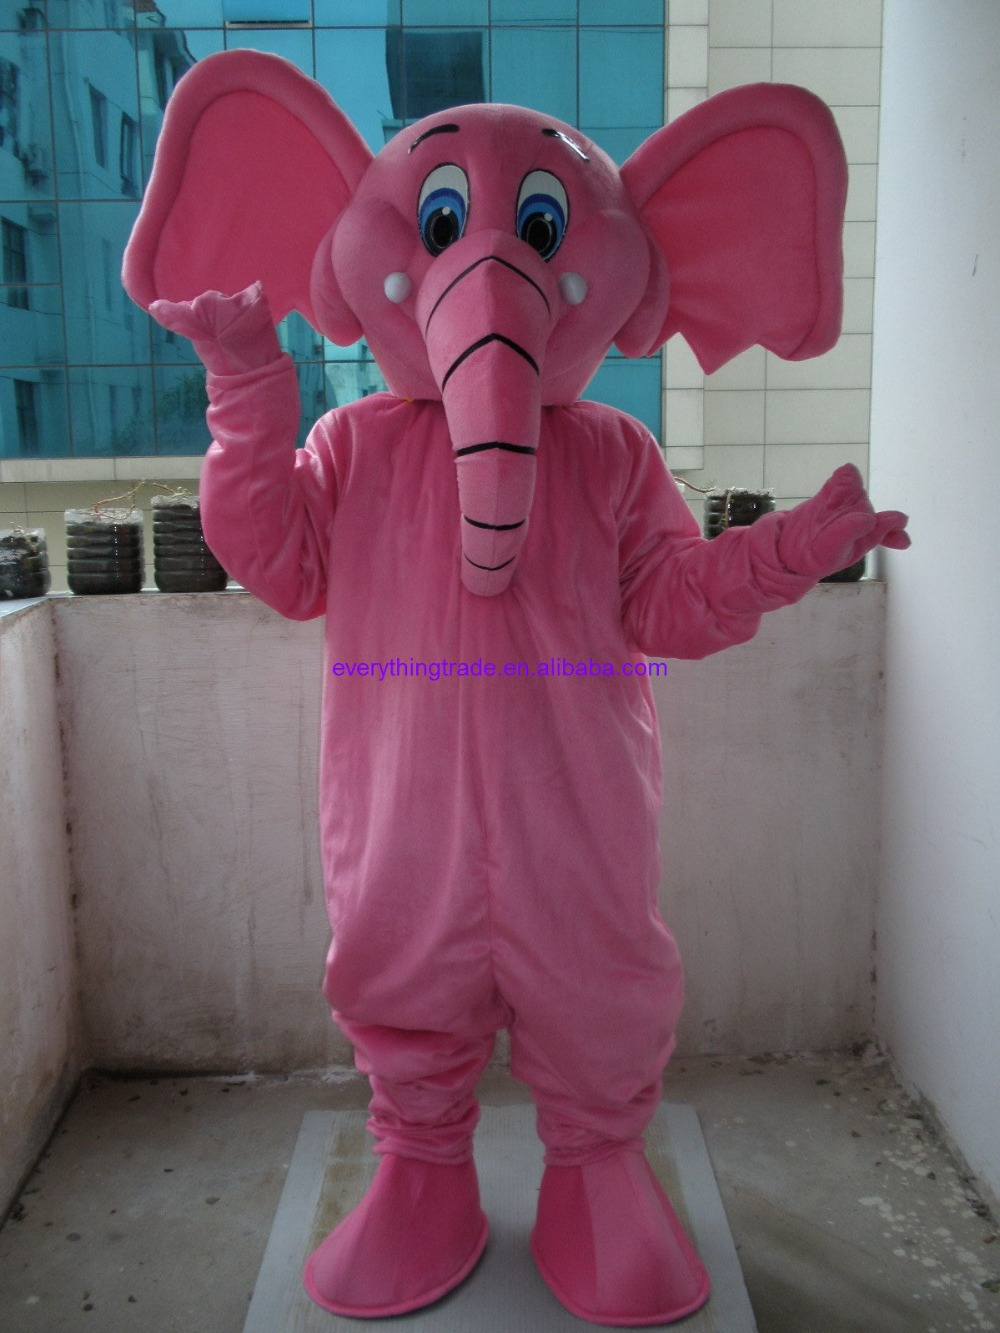 2014 Hot selling Adult cartoon lovely pink elephant mascot costume fancy dress party adult size - Mascots store